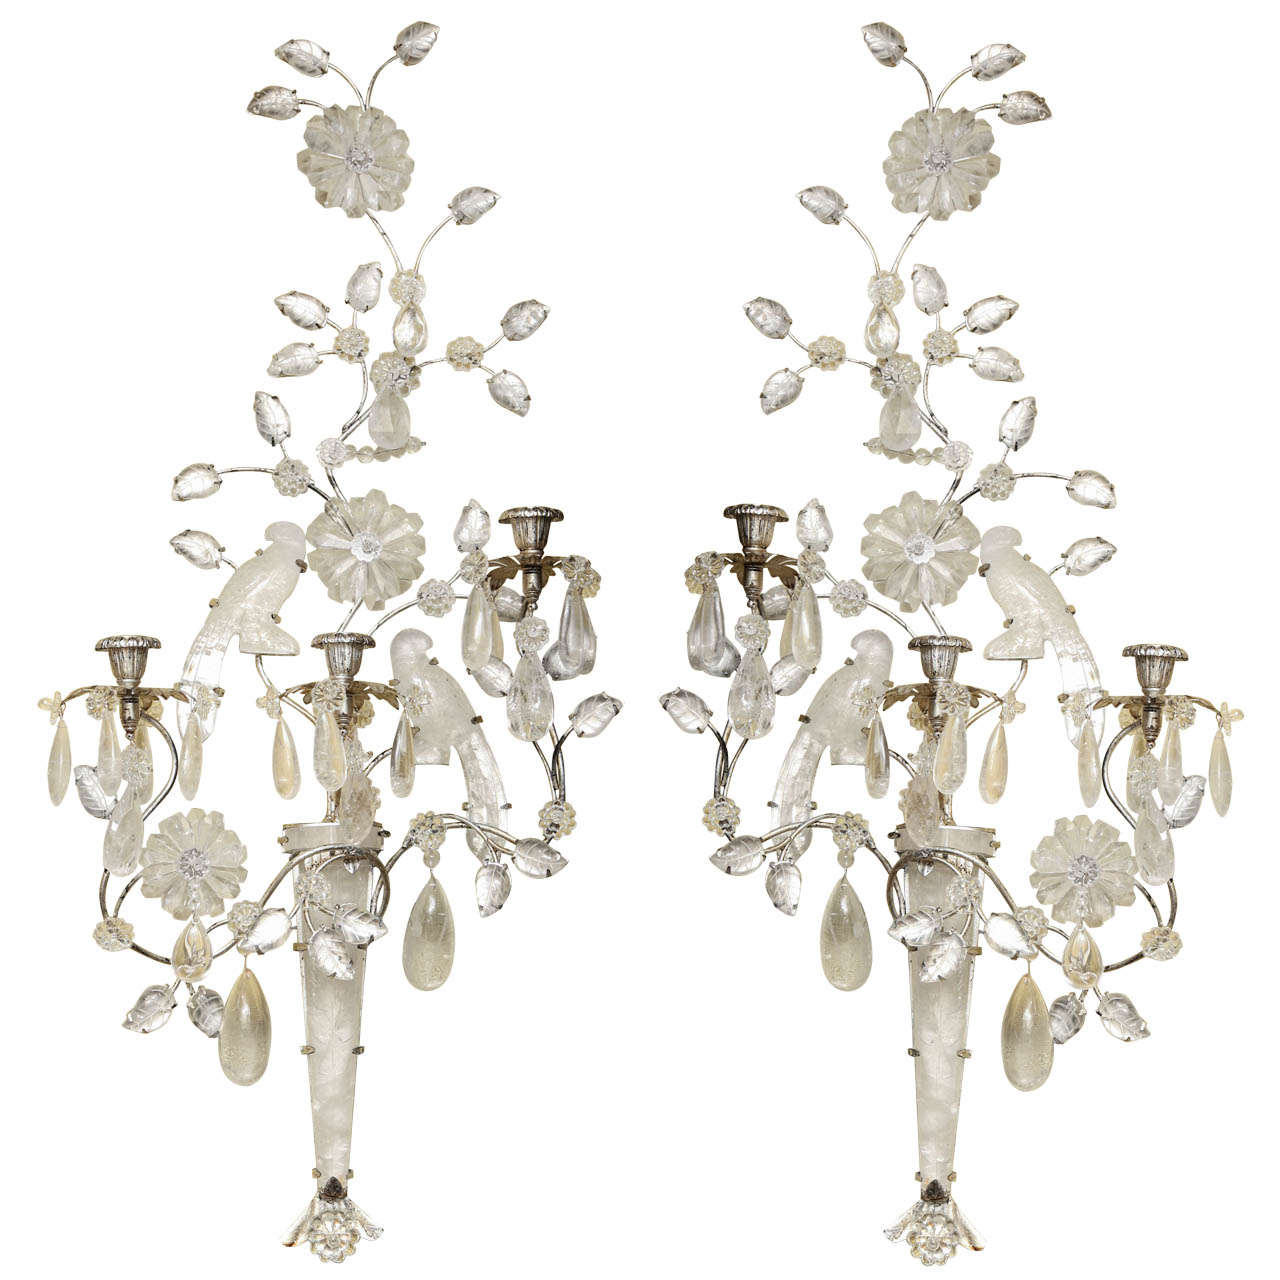 Crystal Bird Wall Sconces : Magnificent Large Pair of Rock Crystal Double Bird Three-Arm Wall Light Sconces For Sale at 1stdibs